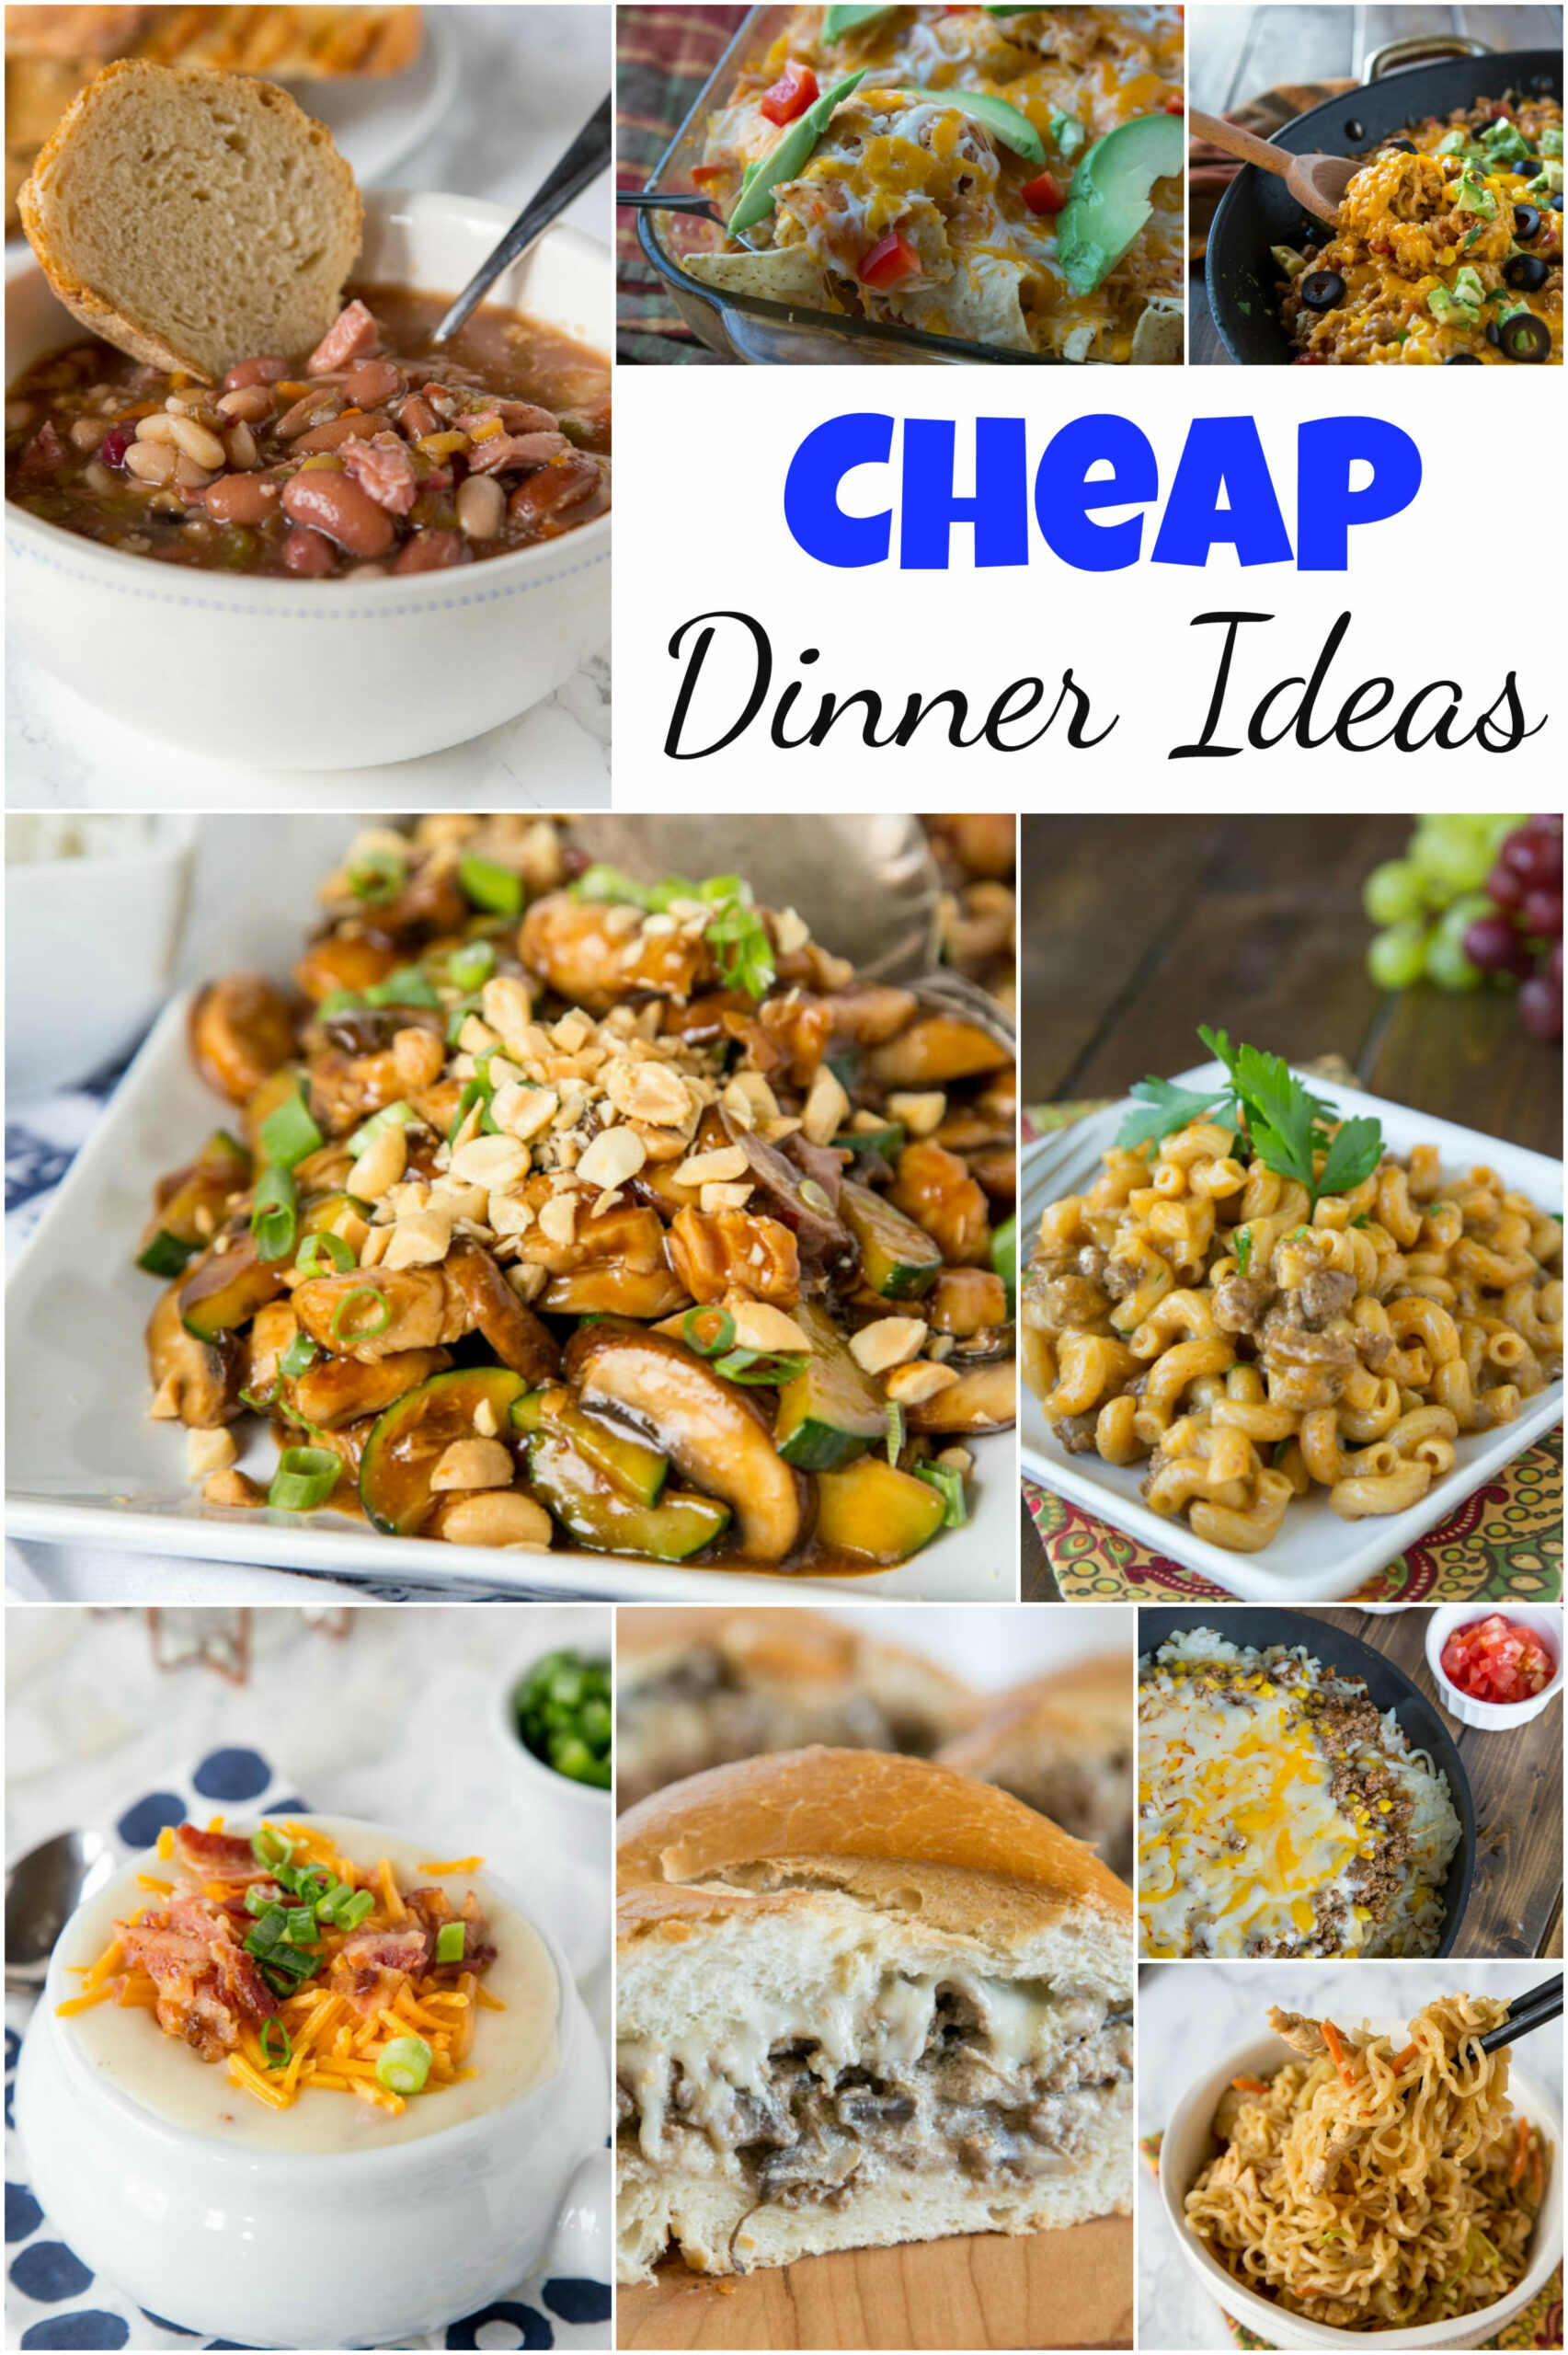 Cheap Dinner Ideas - Dinners, Dishes, and Desserts - dinner recipes on a budget